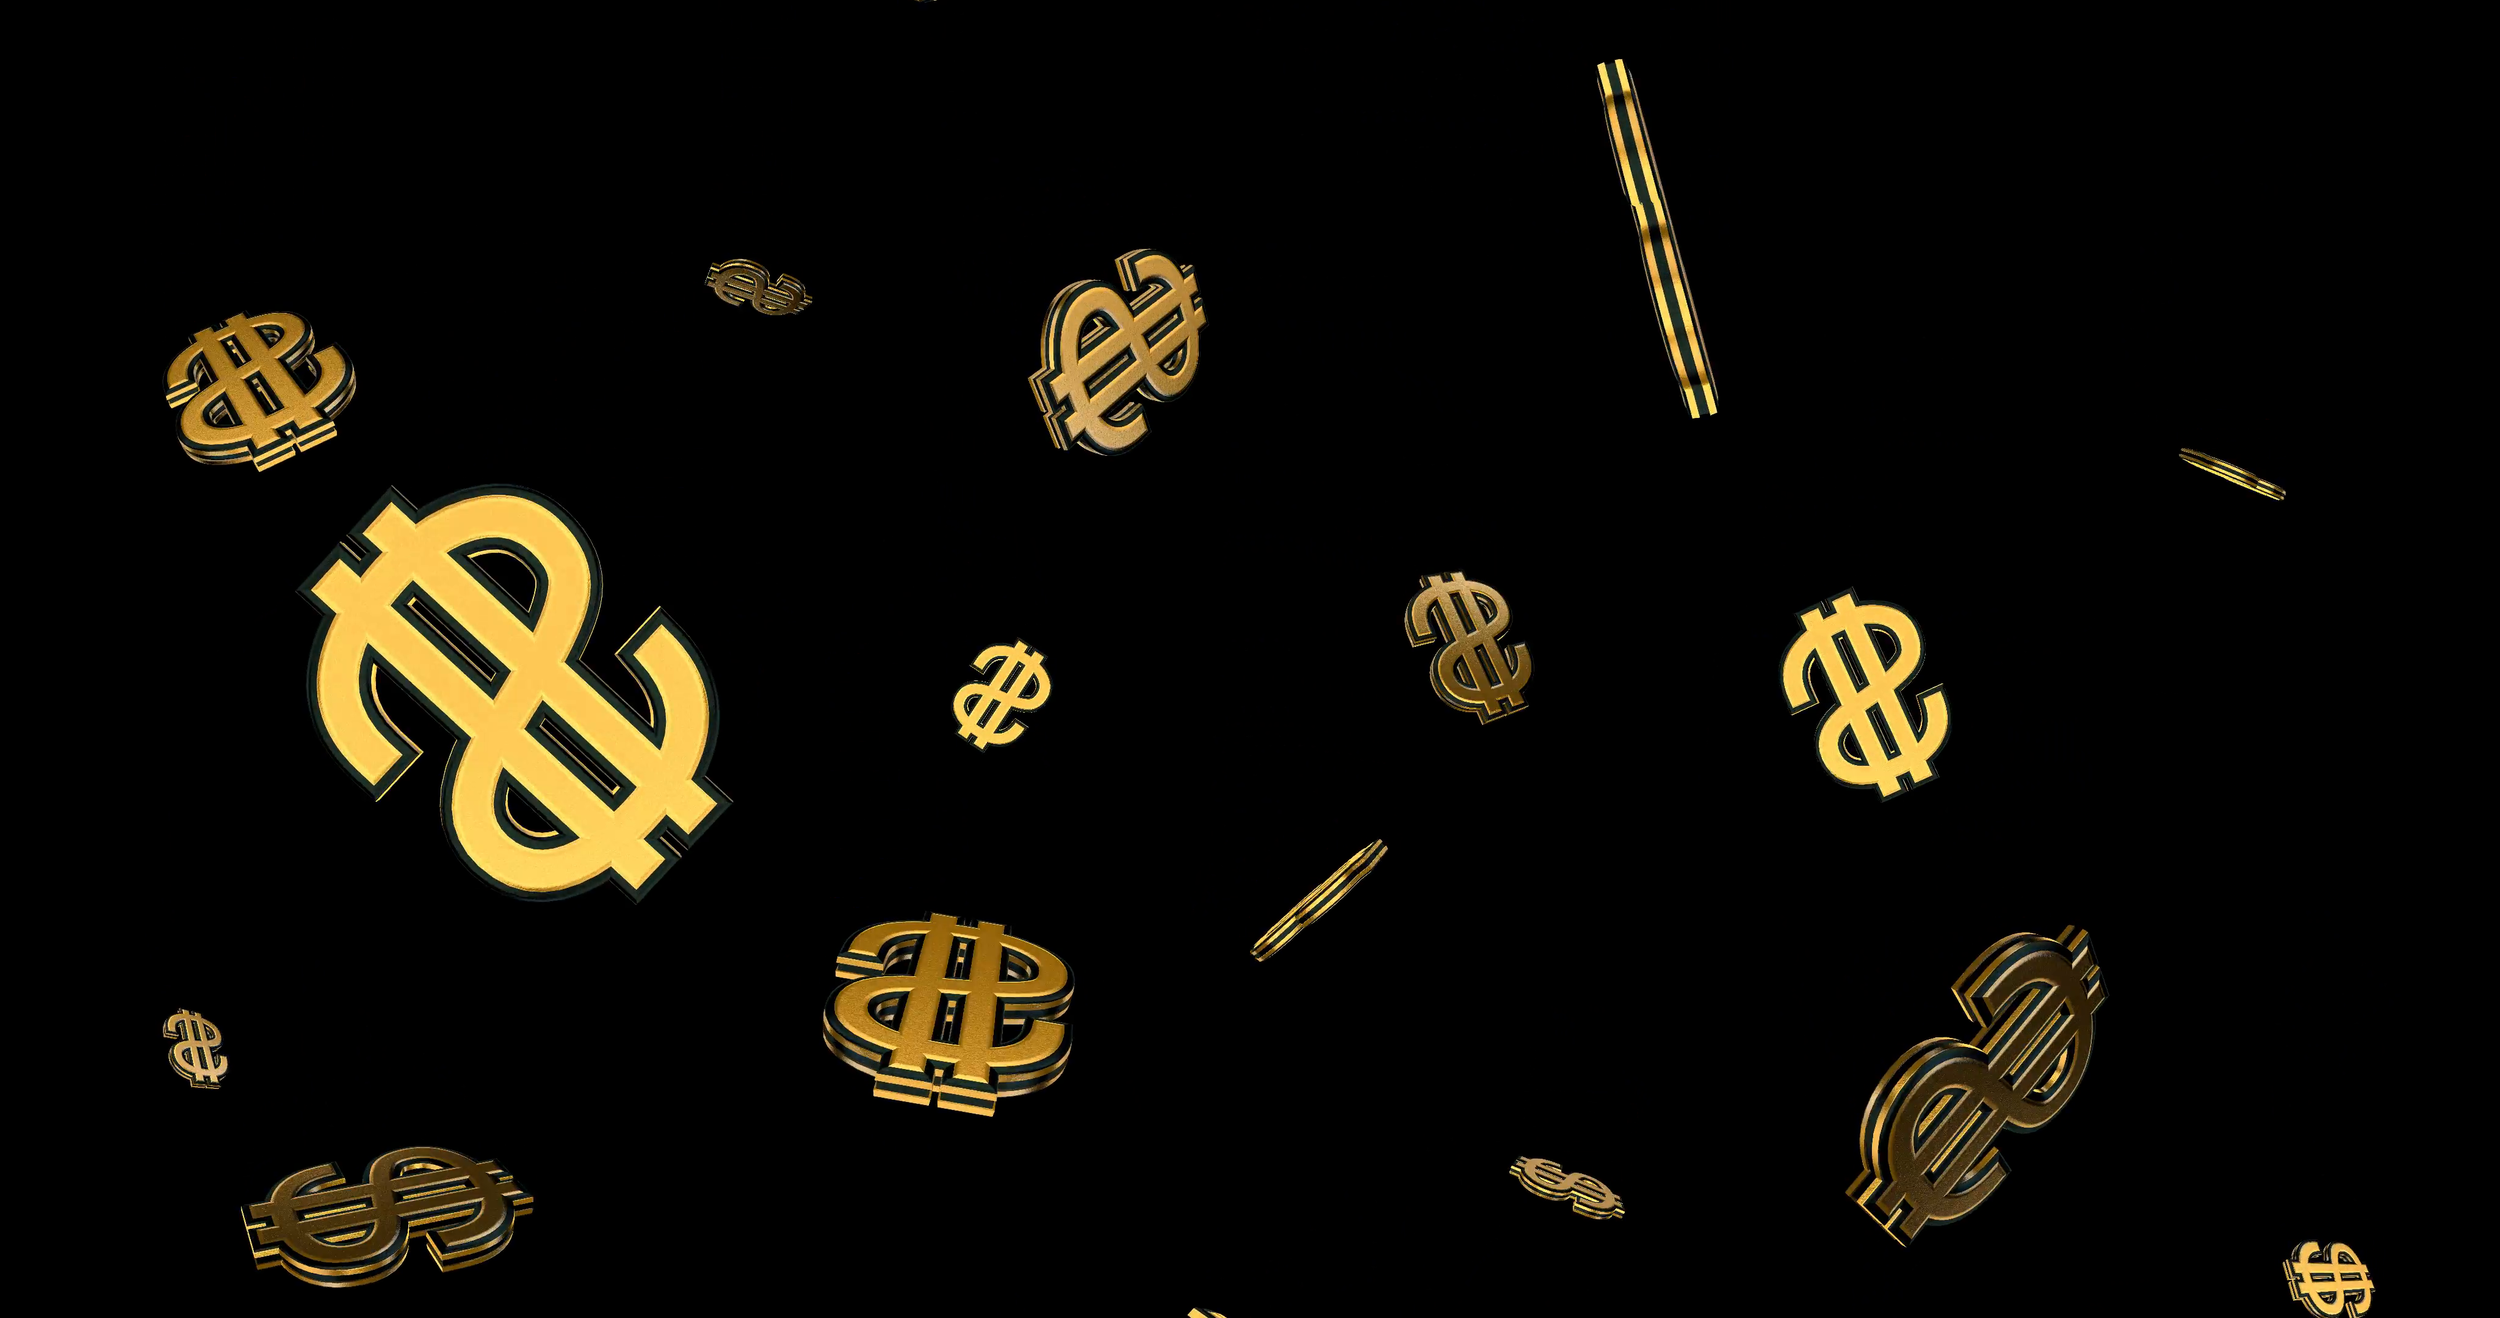 falling-tumbling-dollar-signs-with-transparent-background-and-seamless-looping_esozmfhce__F0005.png